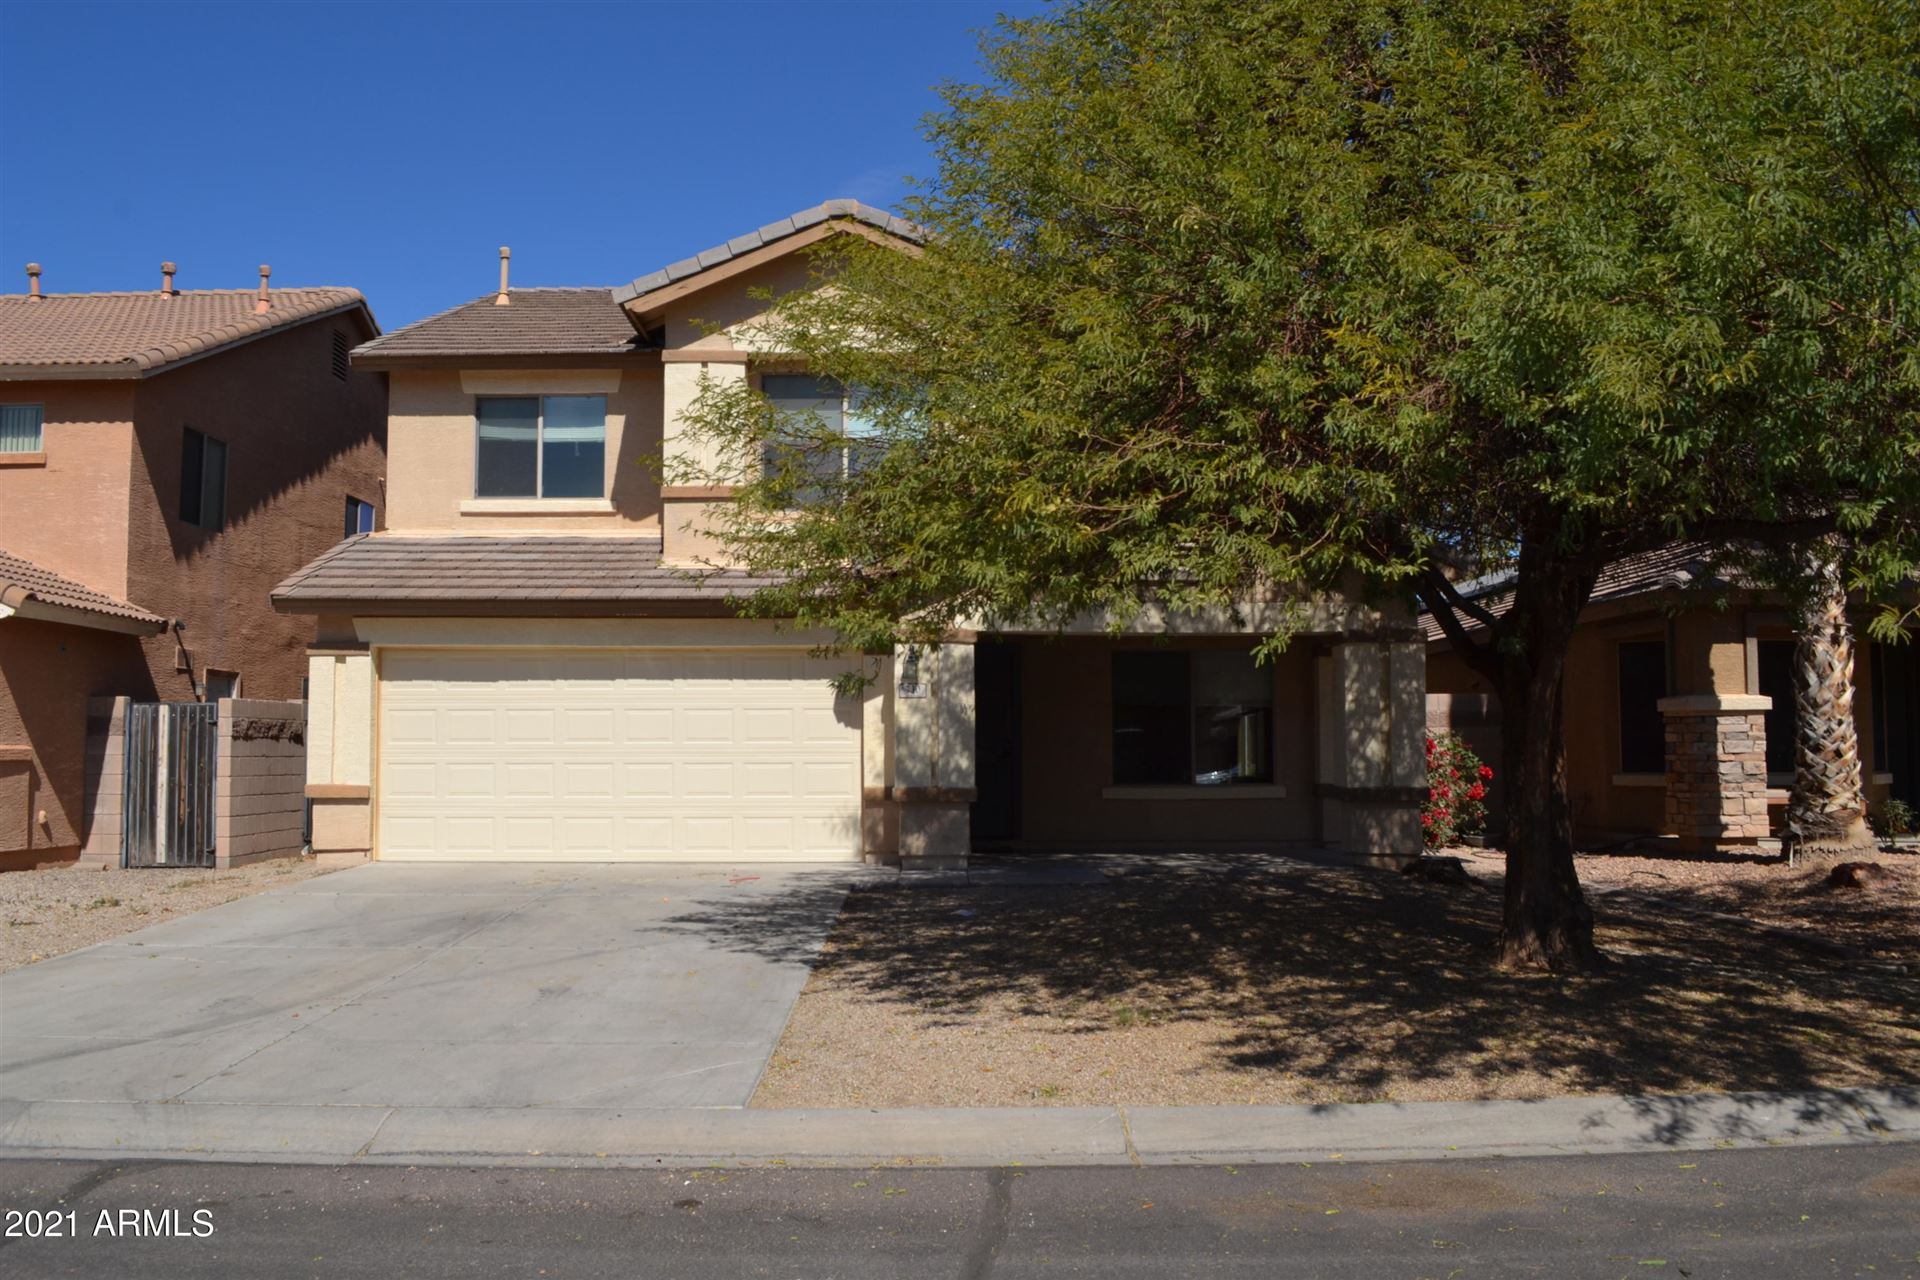 Photo of 730 E MADDISON Street, San Tan Valley, AZ 85140 (MLS # 6202688)